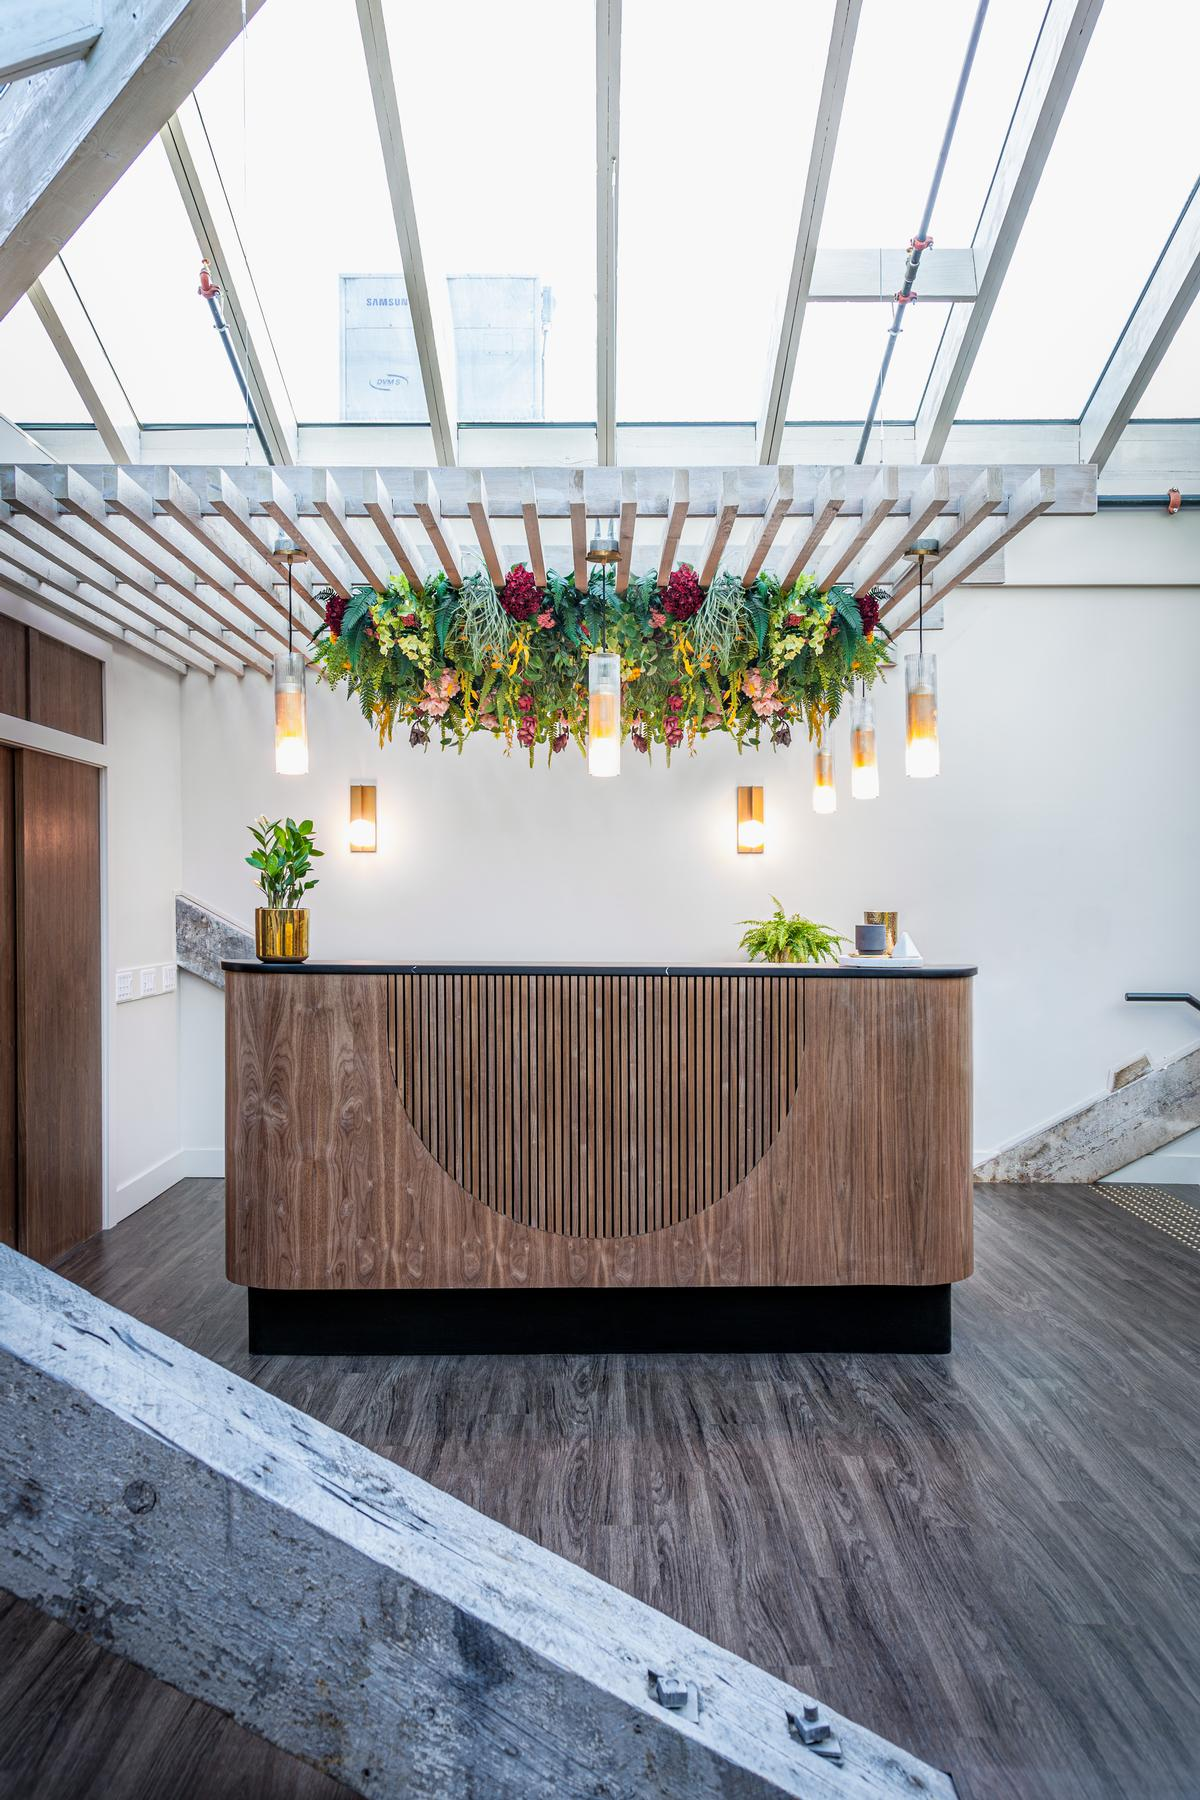 The reception desk features a floaral installation / James Jones